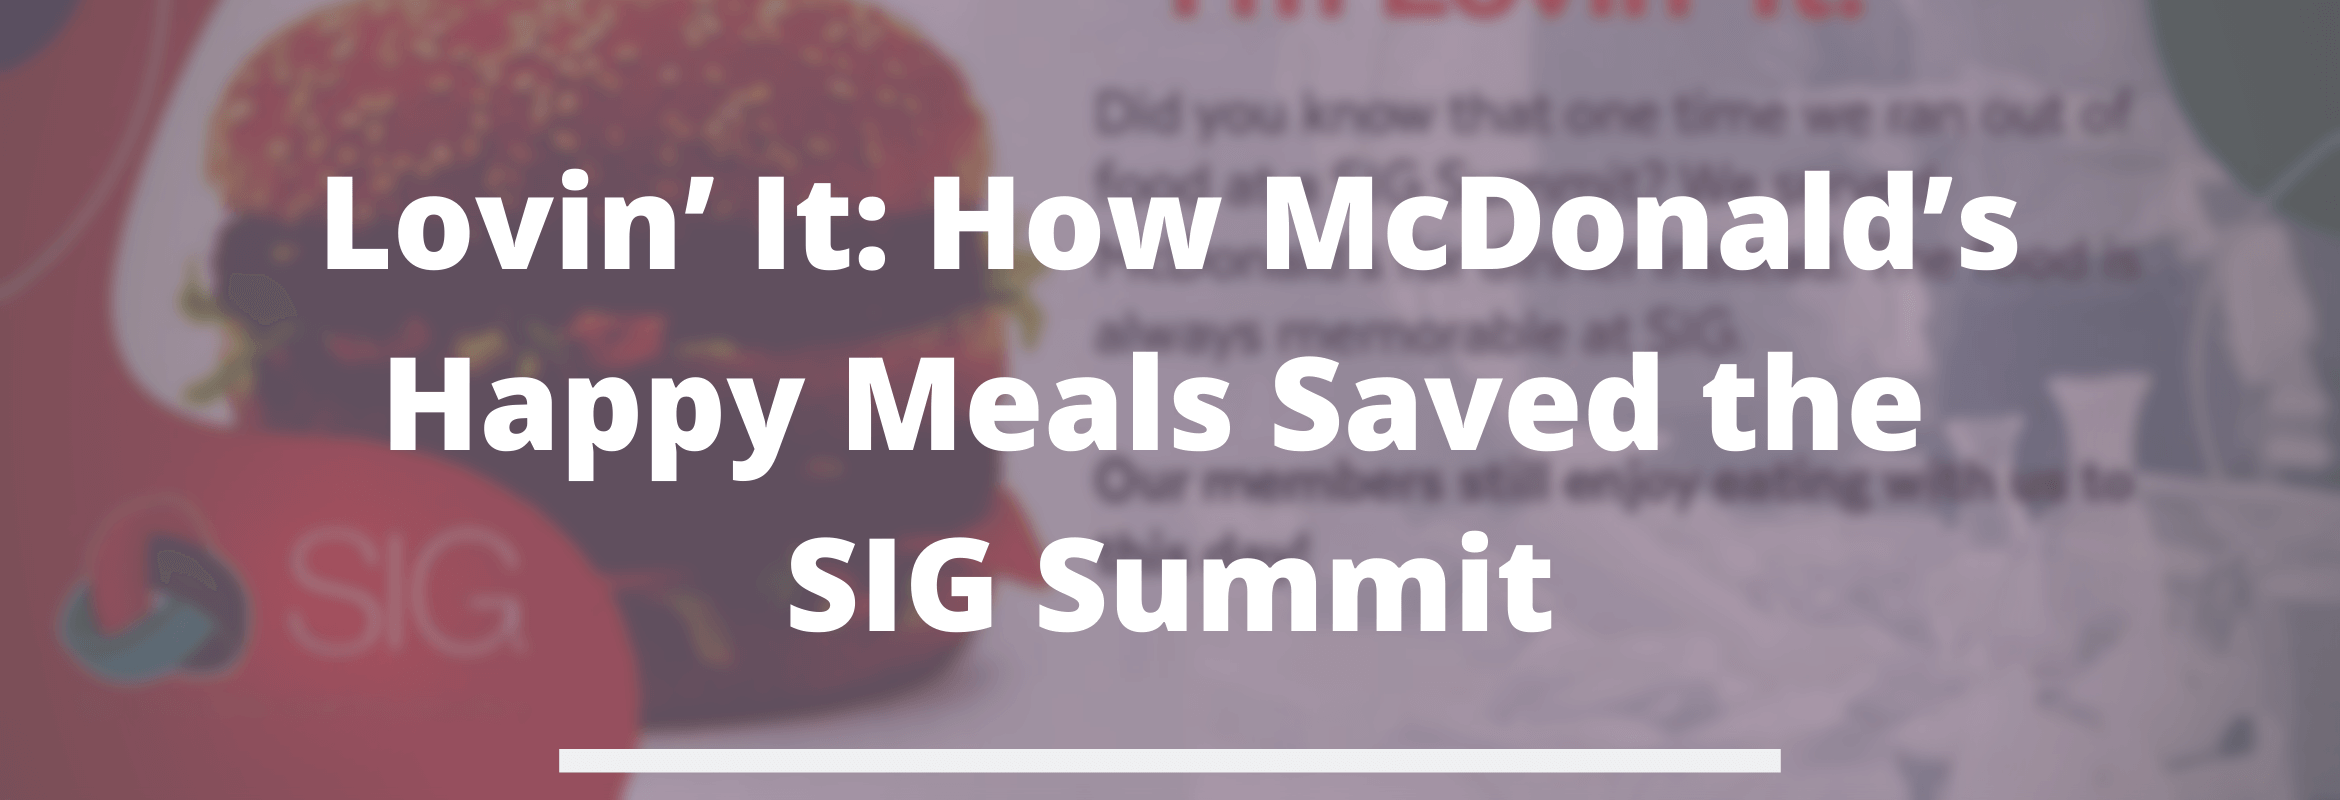 McDonald's at the SIG Summit